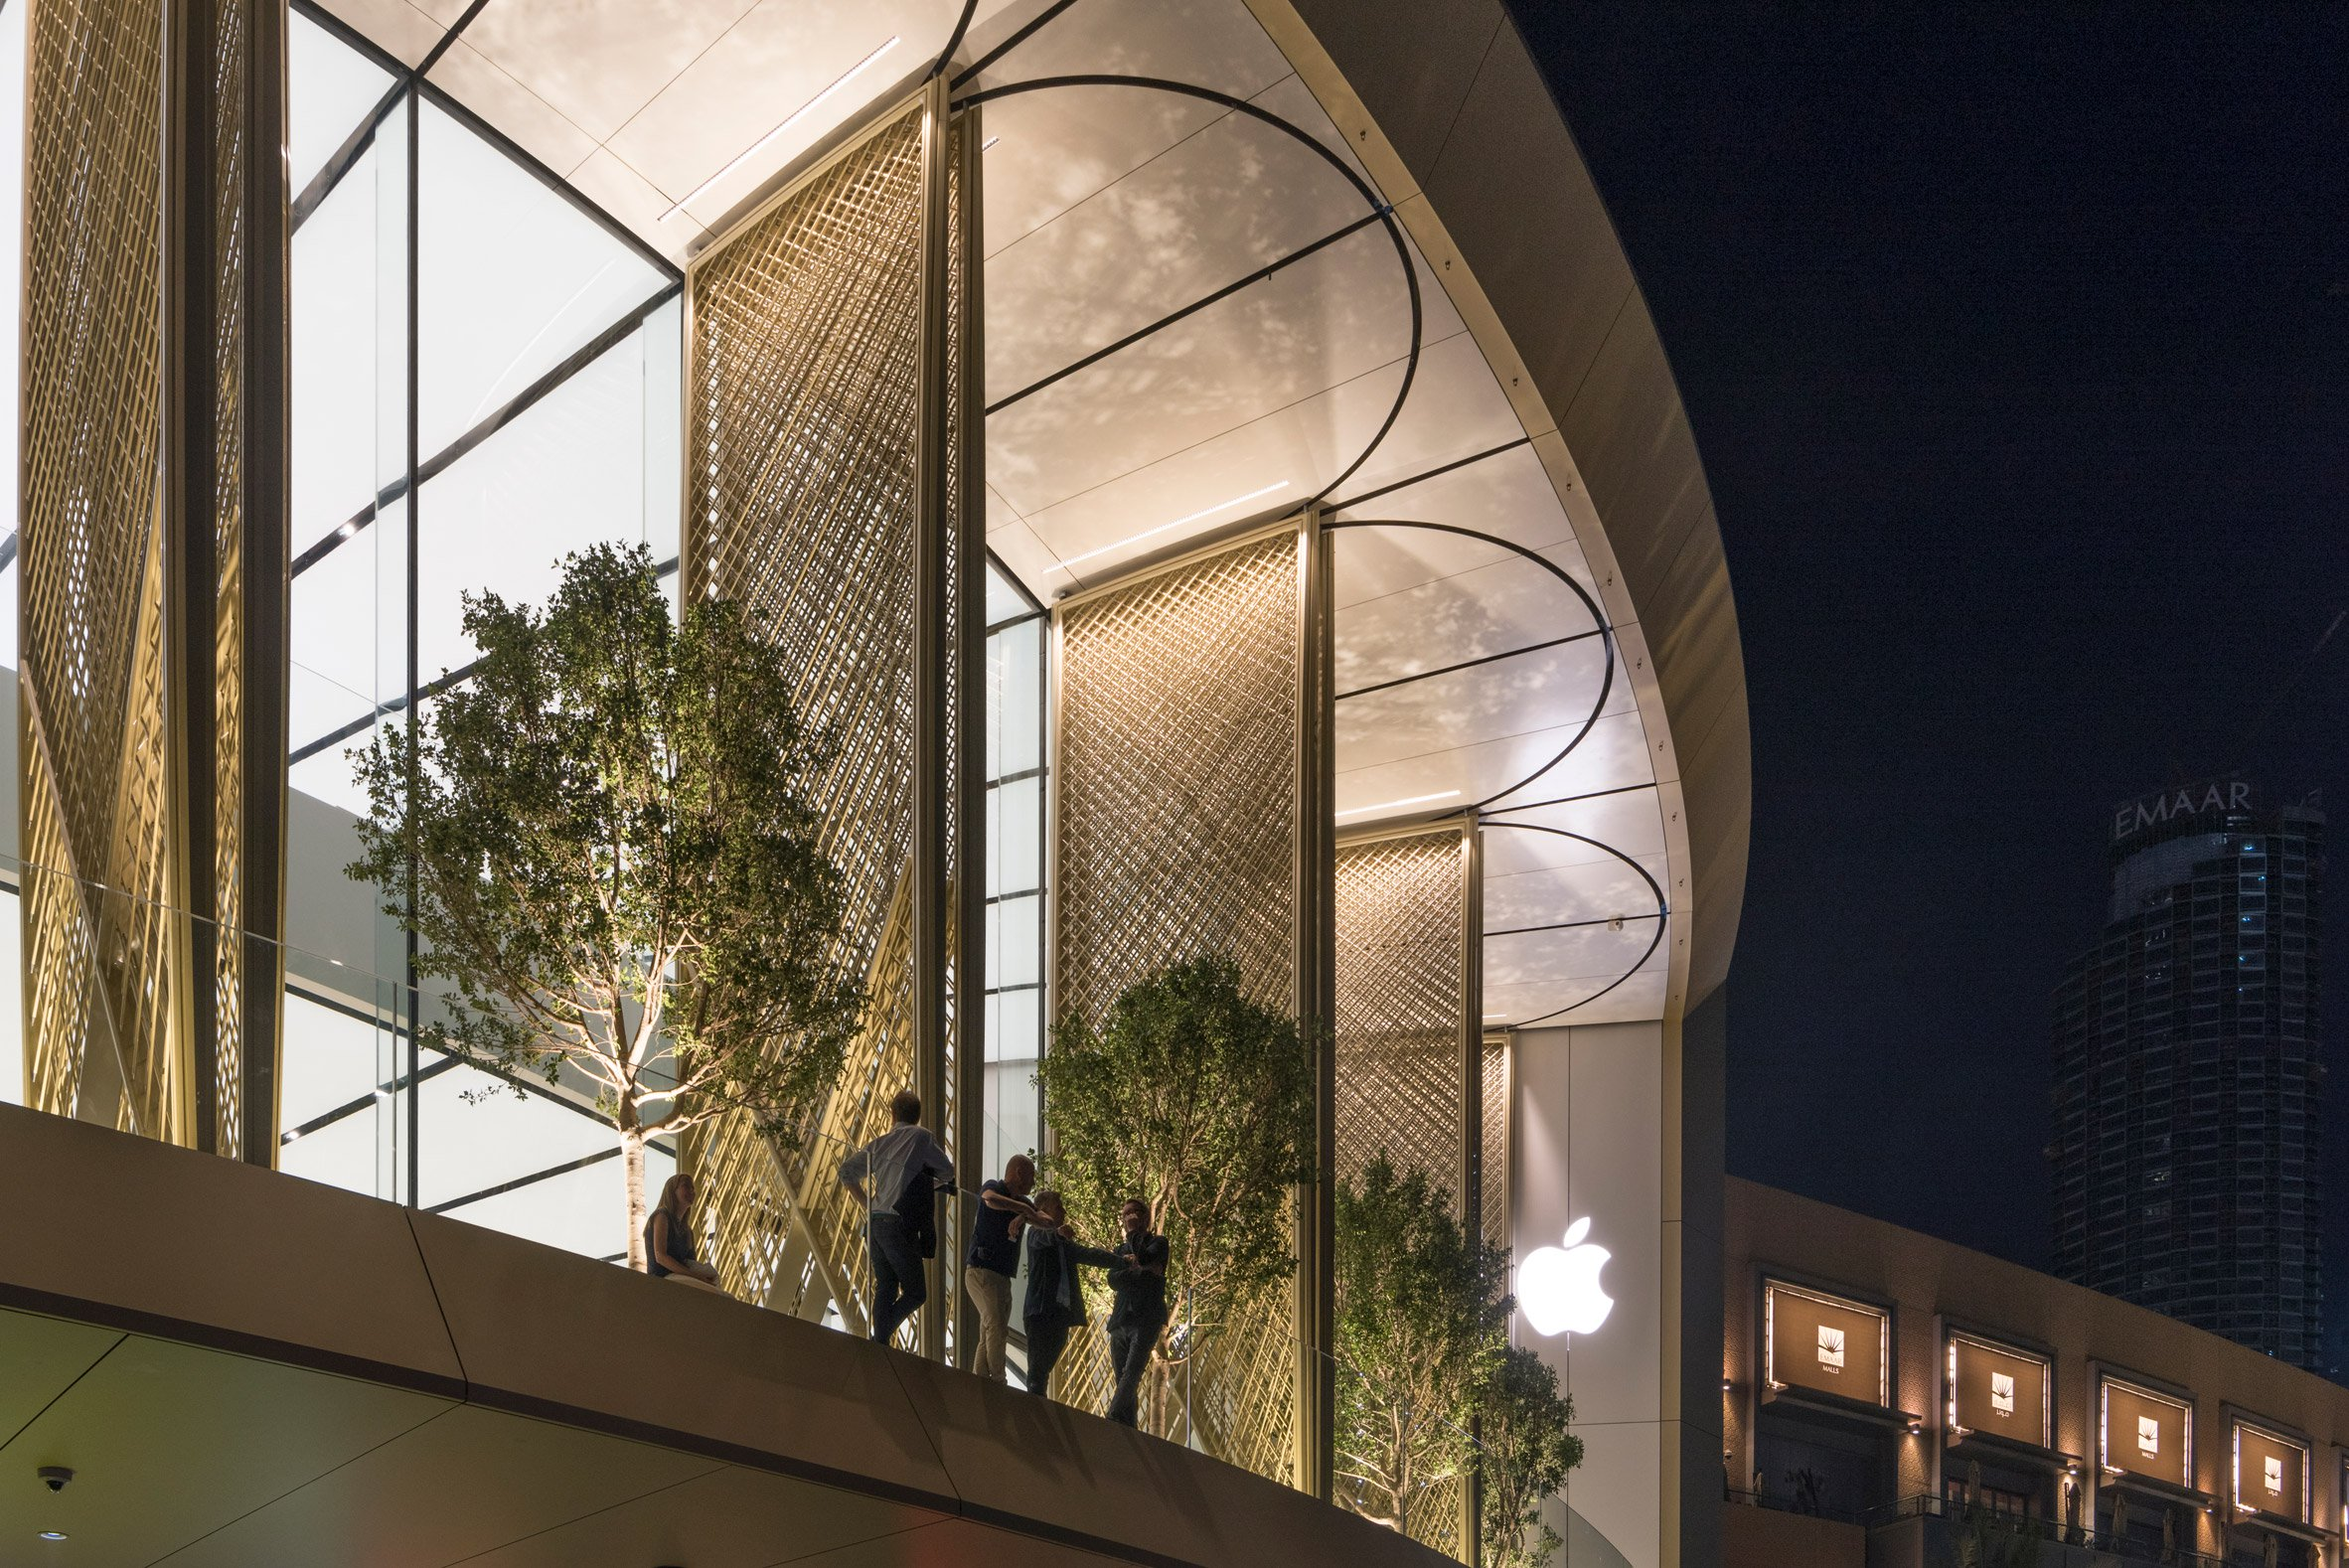 apple-dubai-mall-foster-partners-architecture-retail-uae_dezeen_2364_col_4